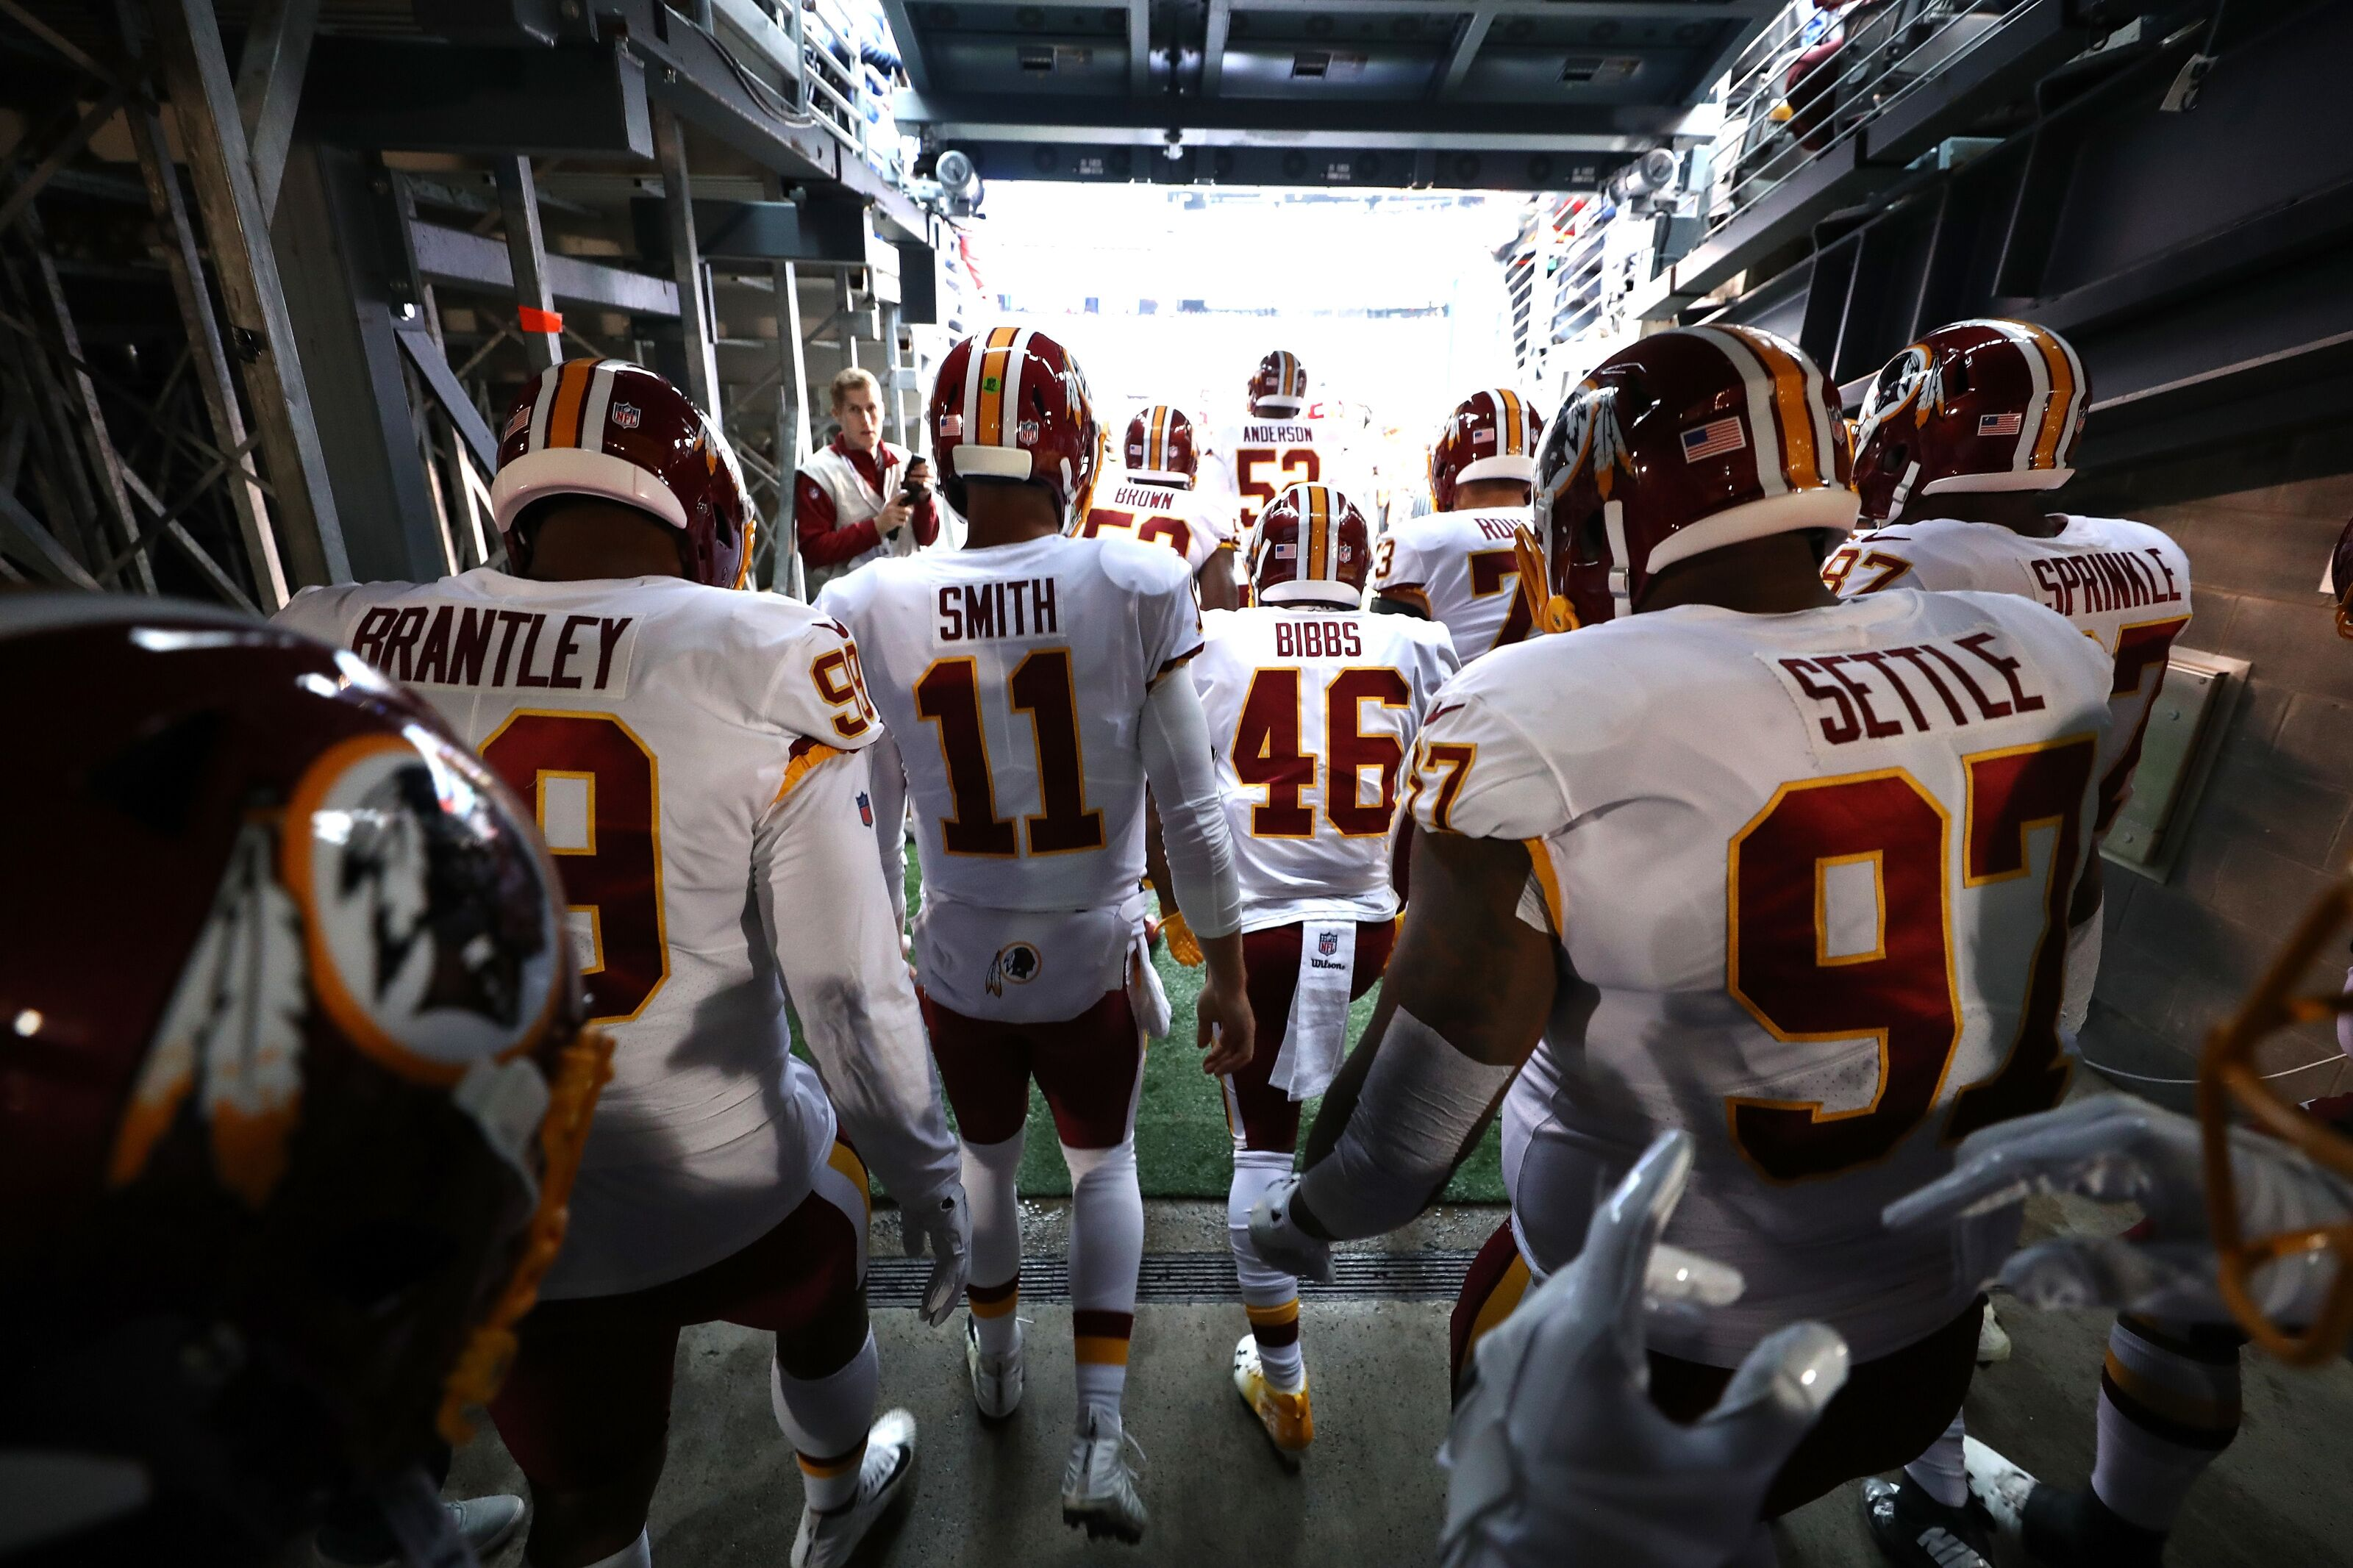 Washington Redskins replace New York Giants as Team Chaos